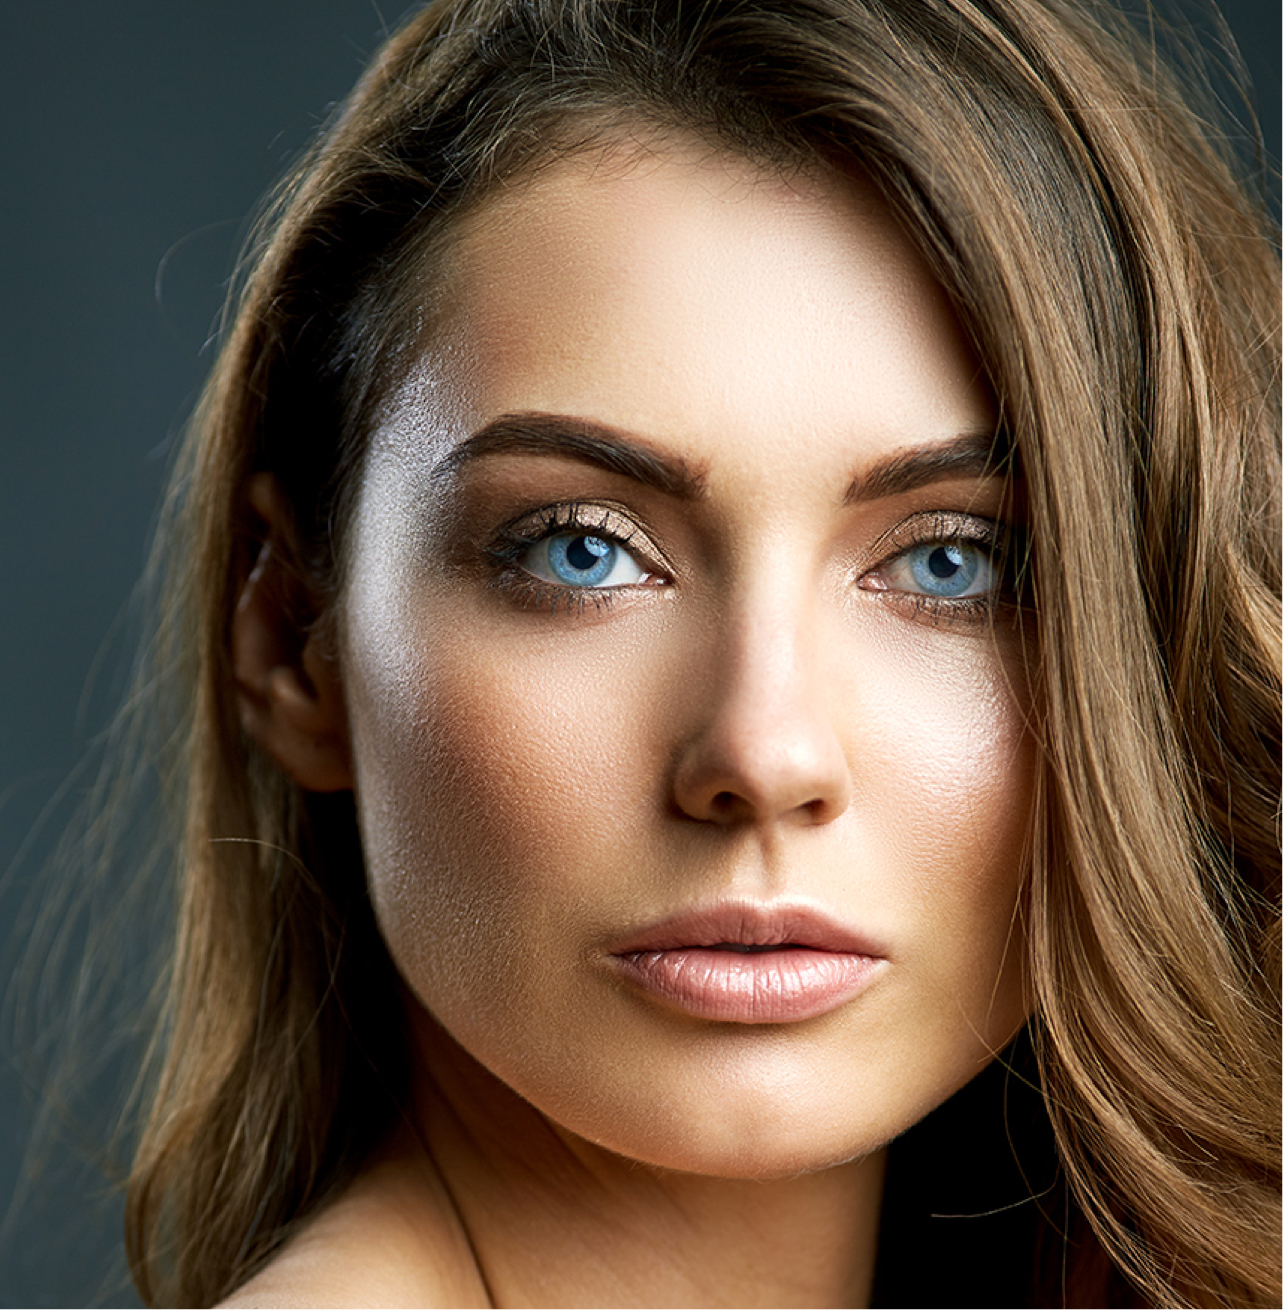 model with striking blue eyes